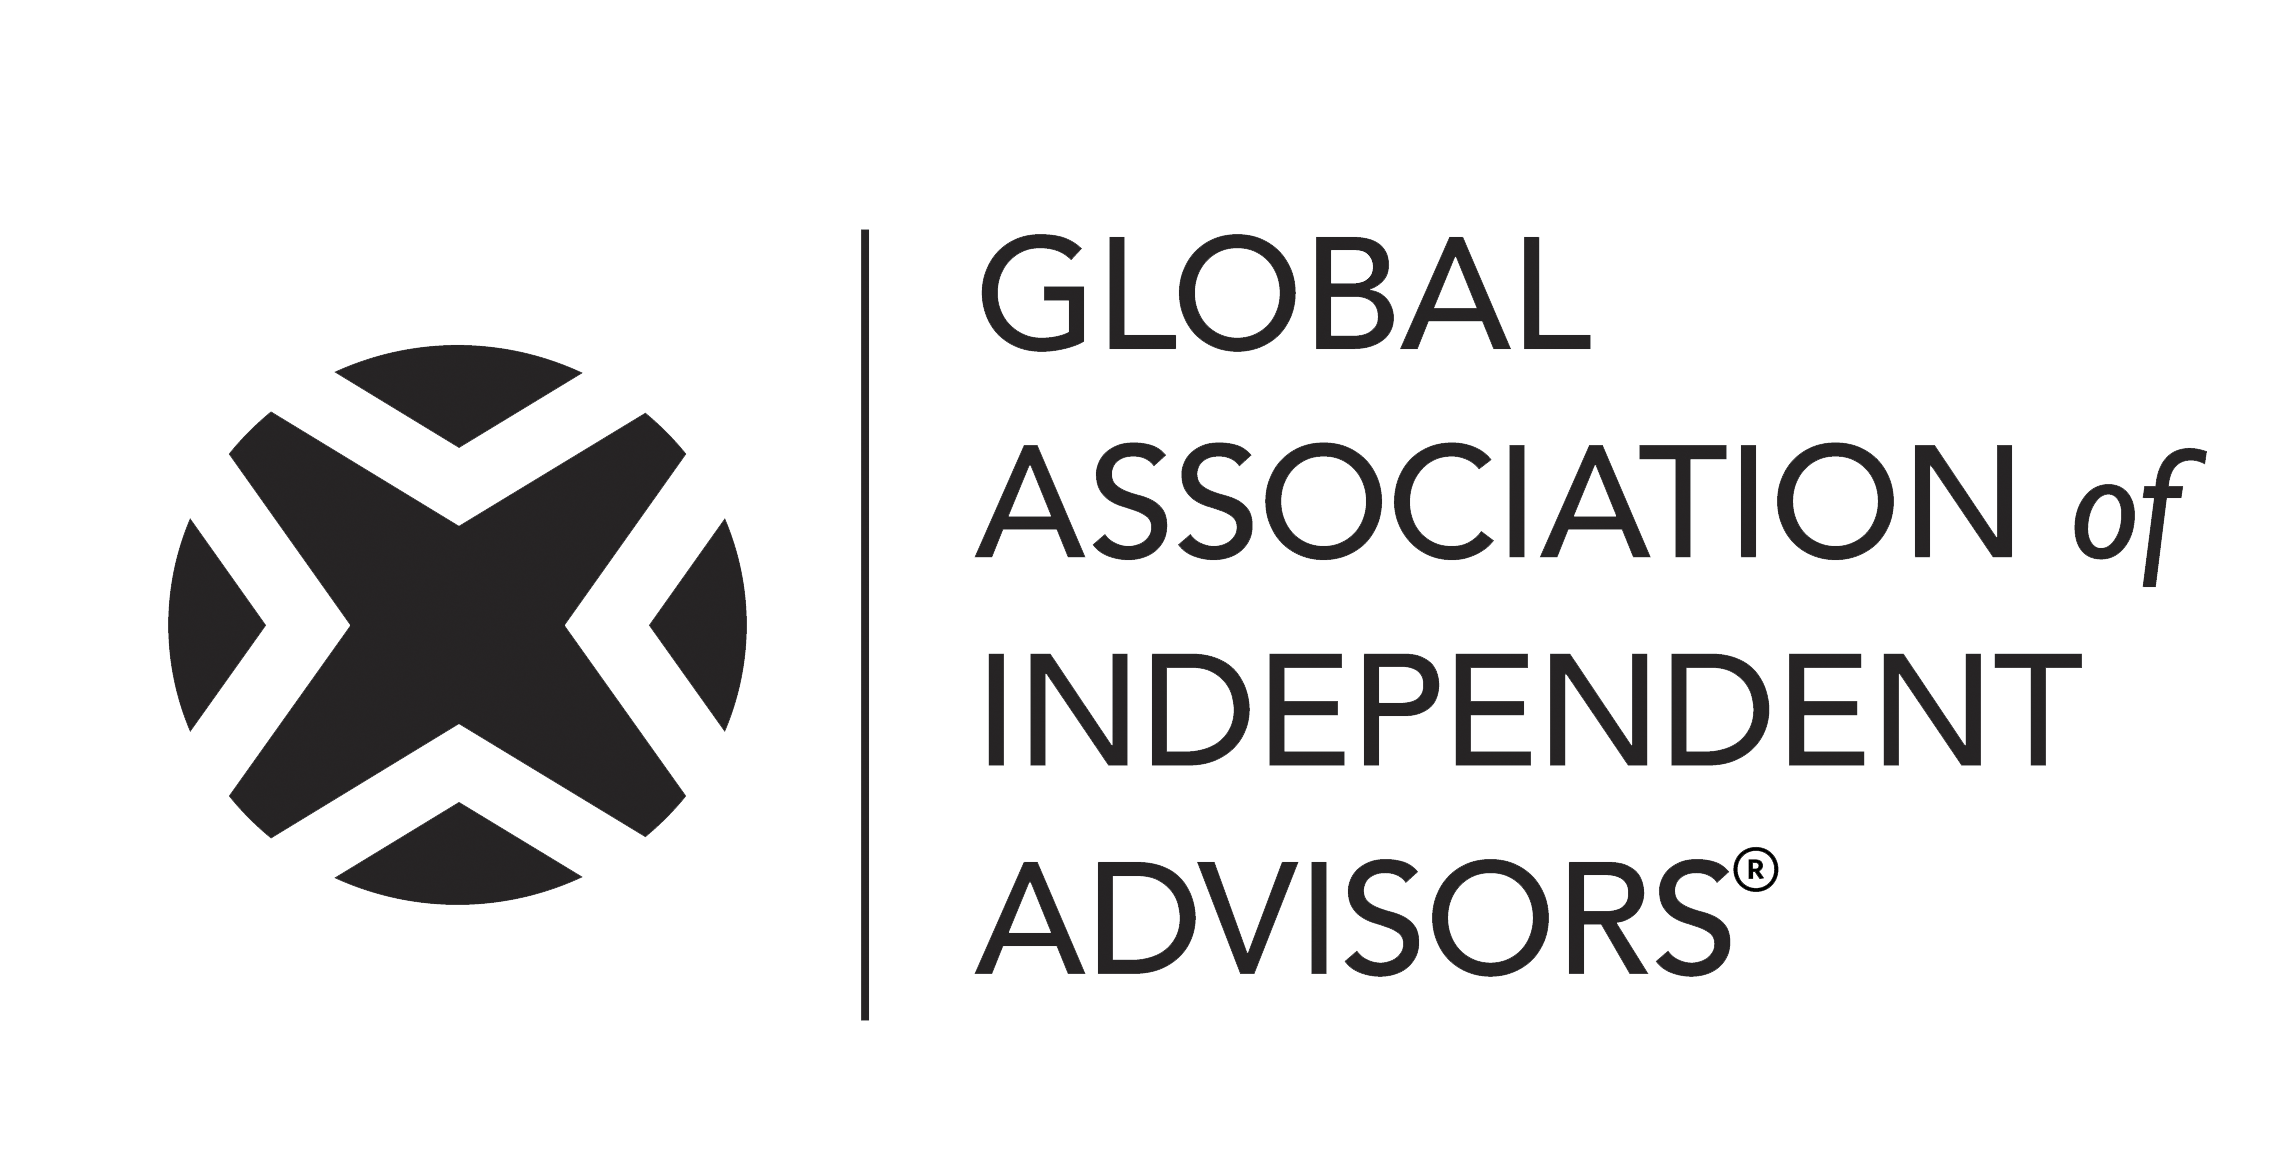 Logo_GLOBAL_ASSOCIATION_OF_ADVISORS_Sin_Fondo.png